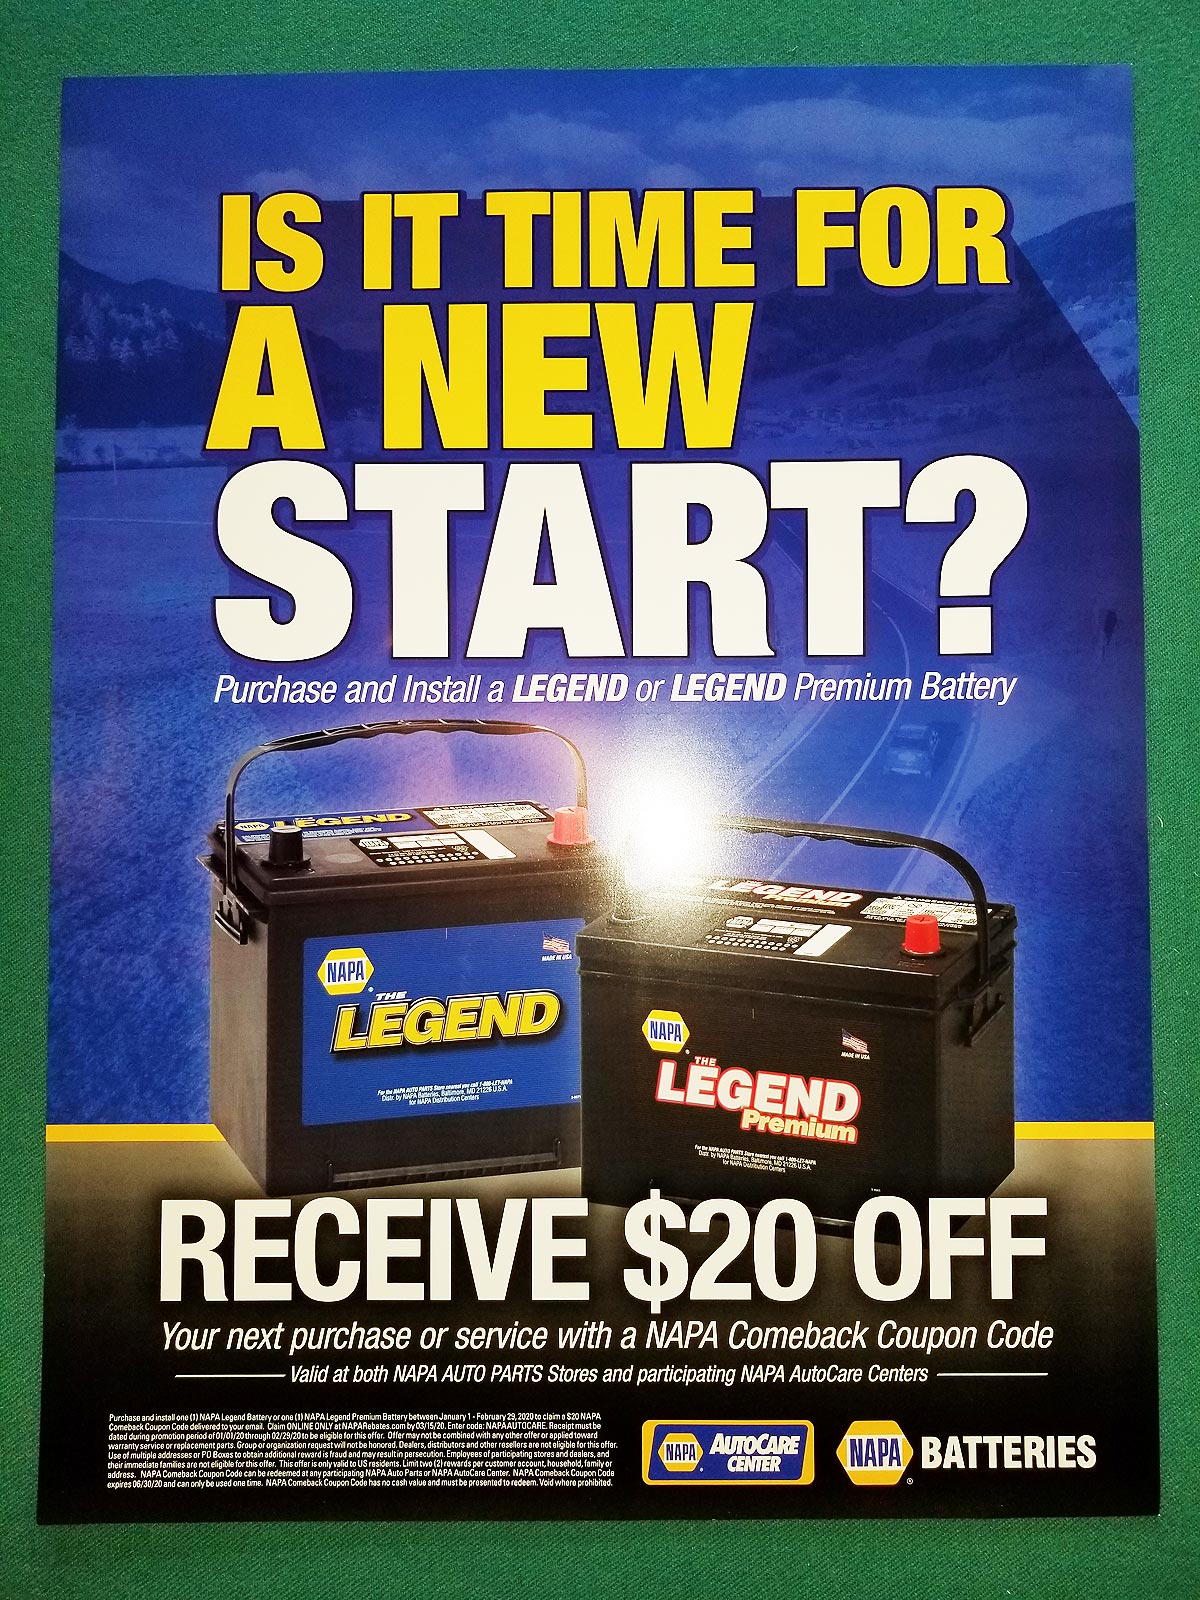 Is it time for a new start? Receive $20 off